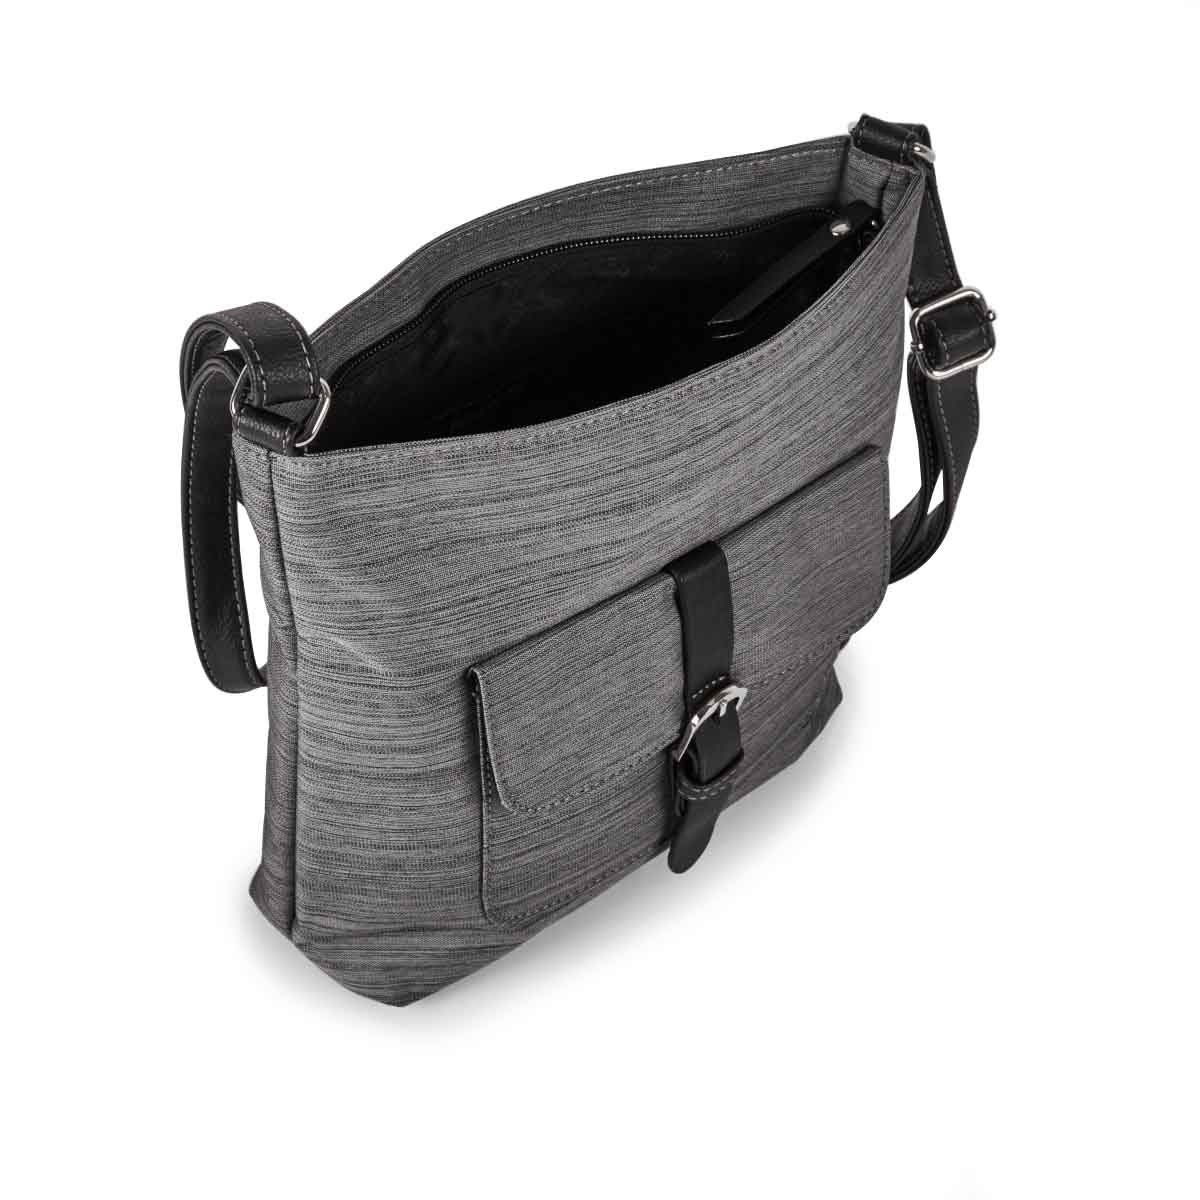 Lds Roots73 grey buckled flap crossbody